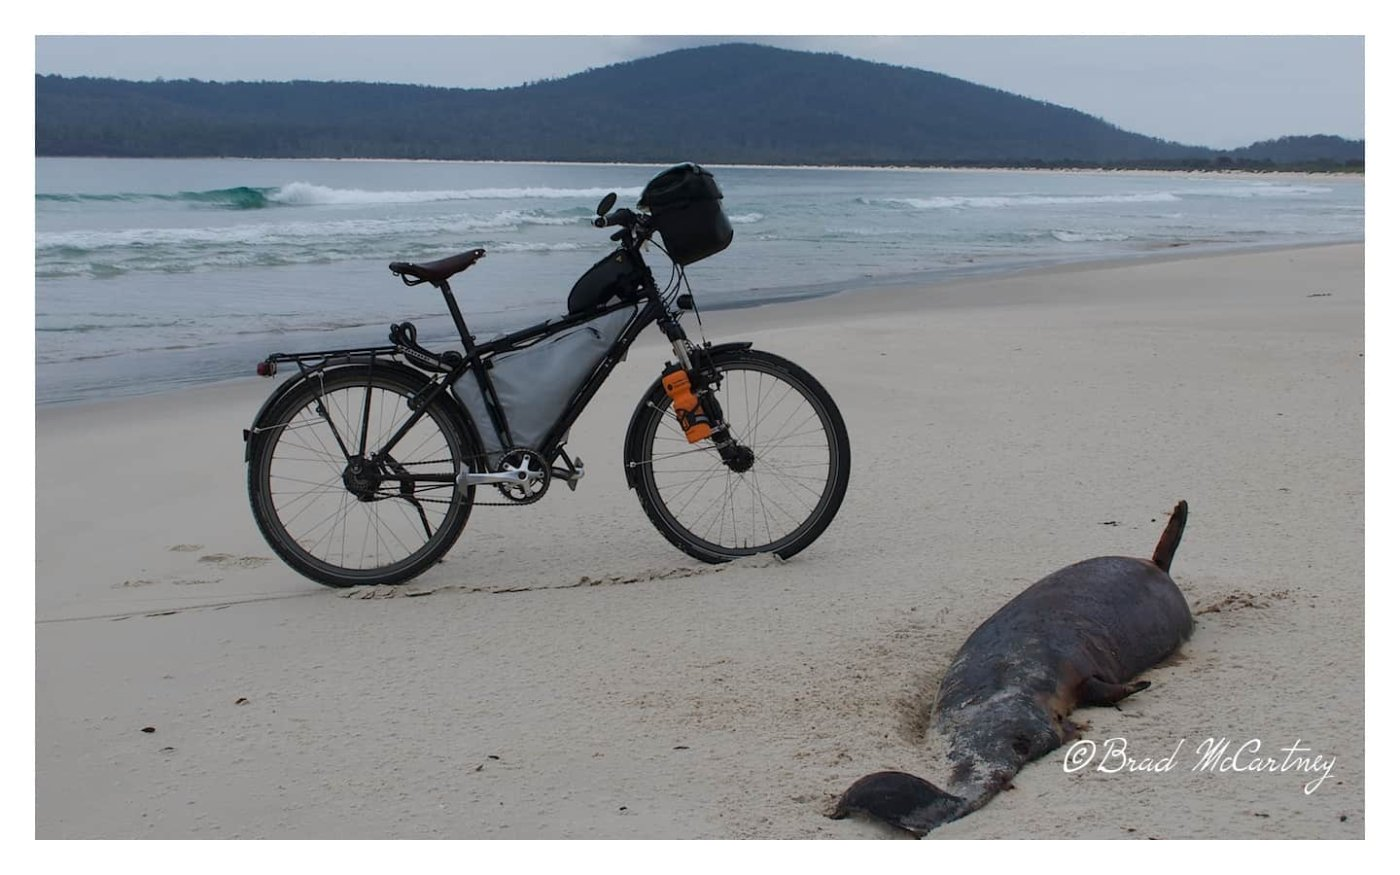 Cycling on the beach at Maria Island